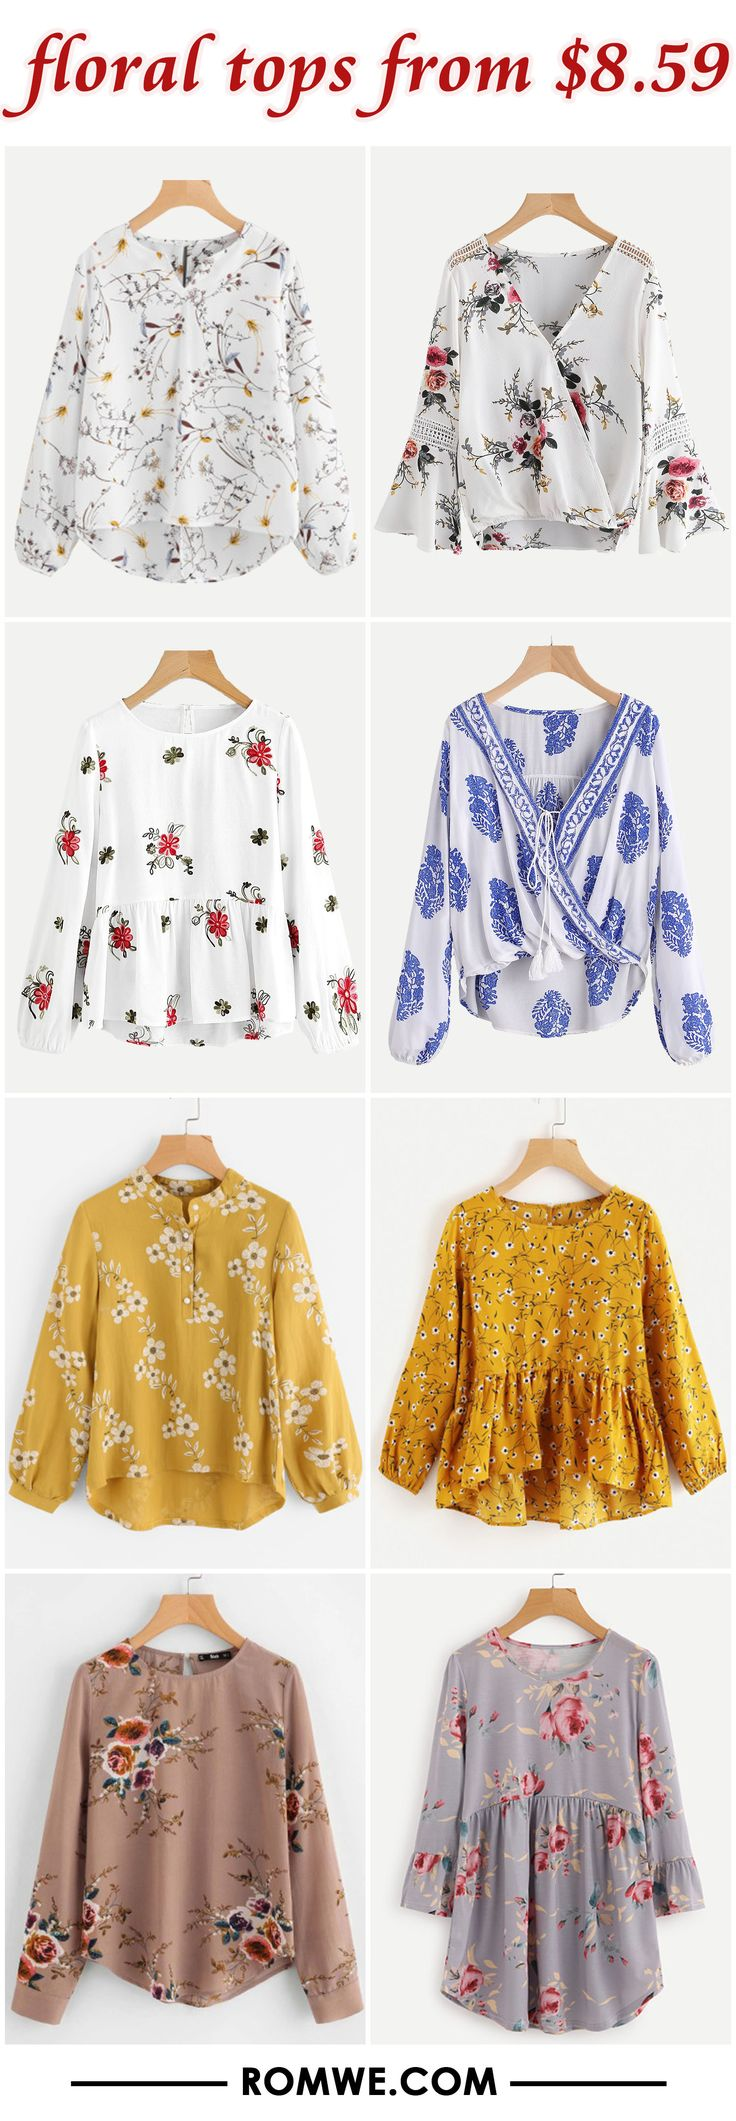 Loving the last two floral tops